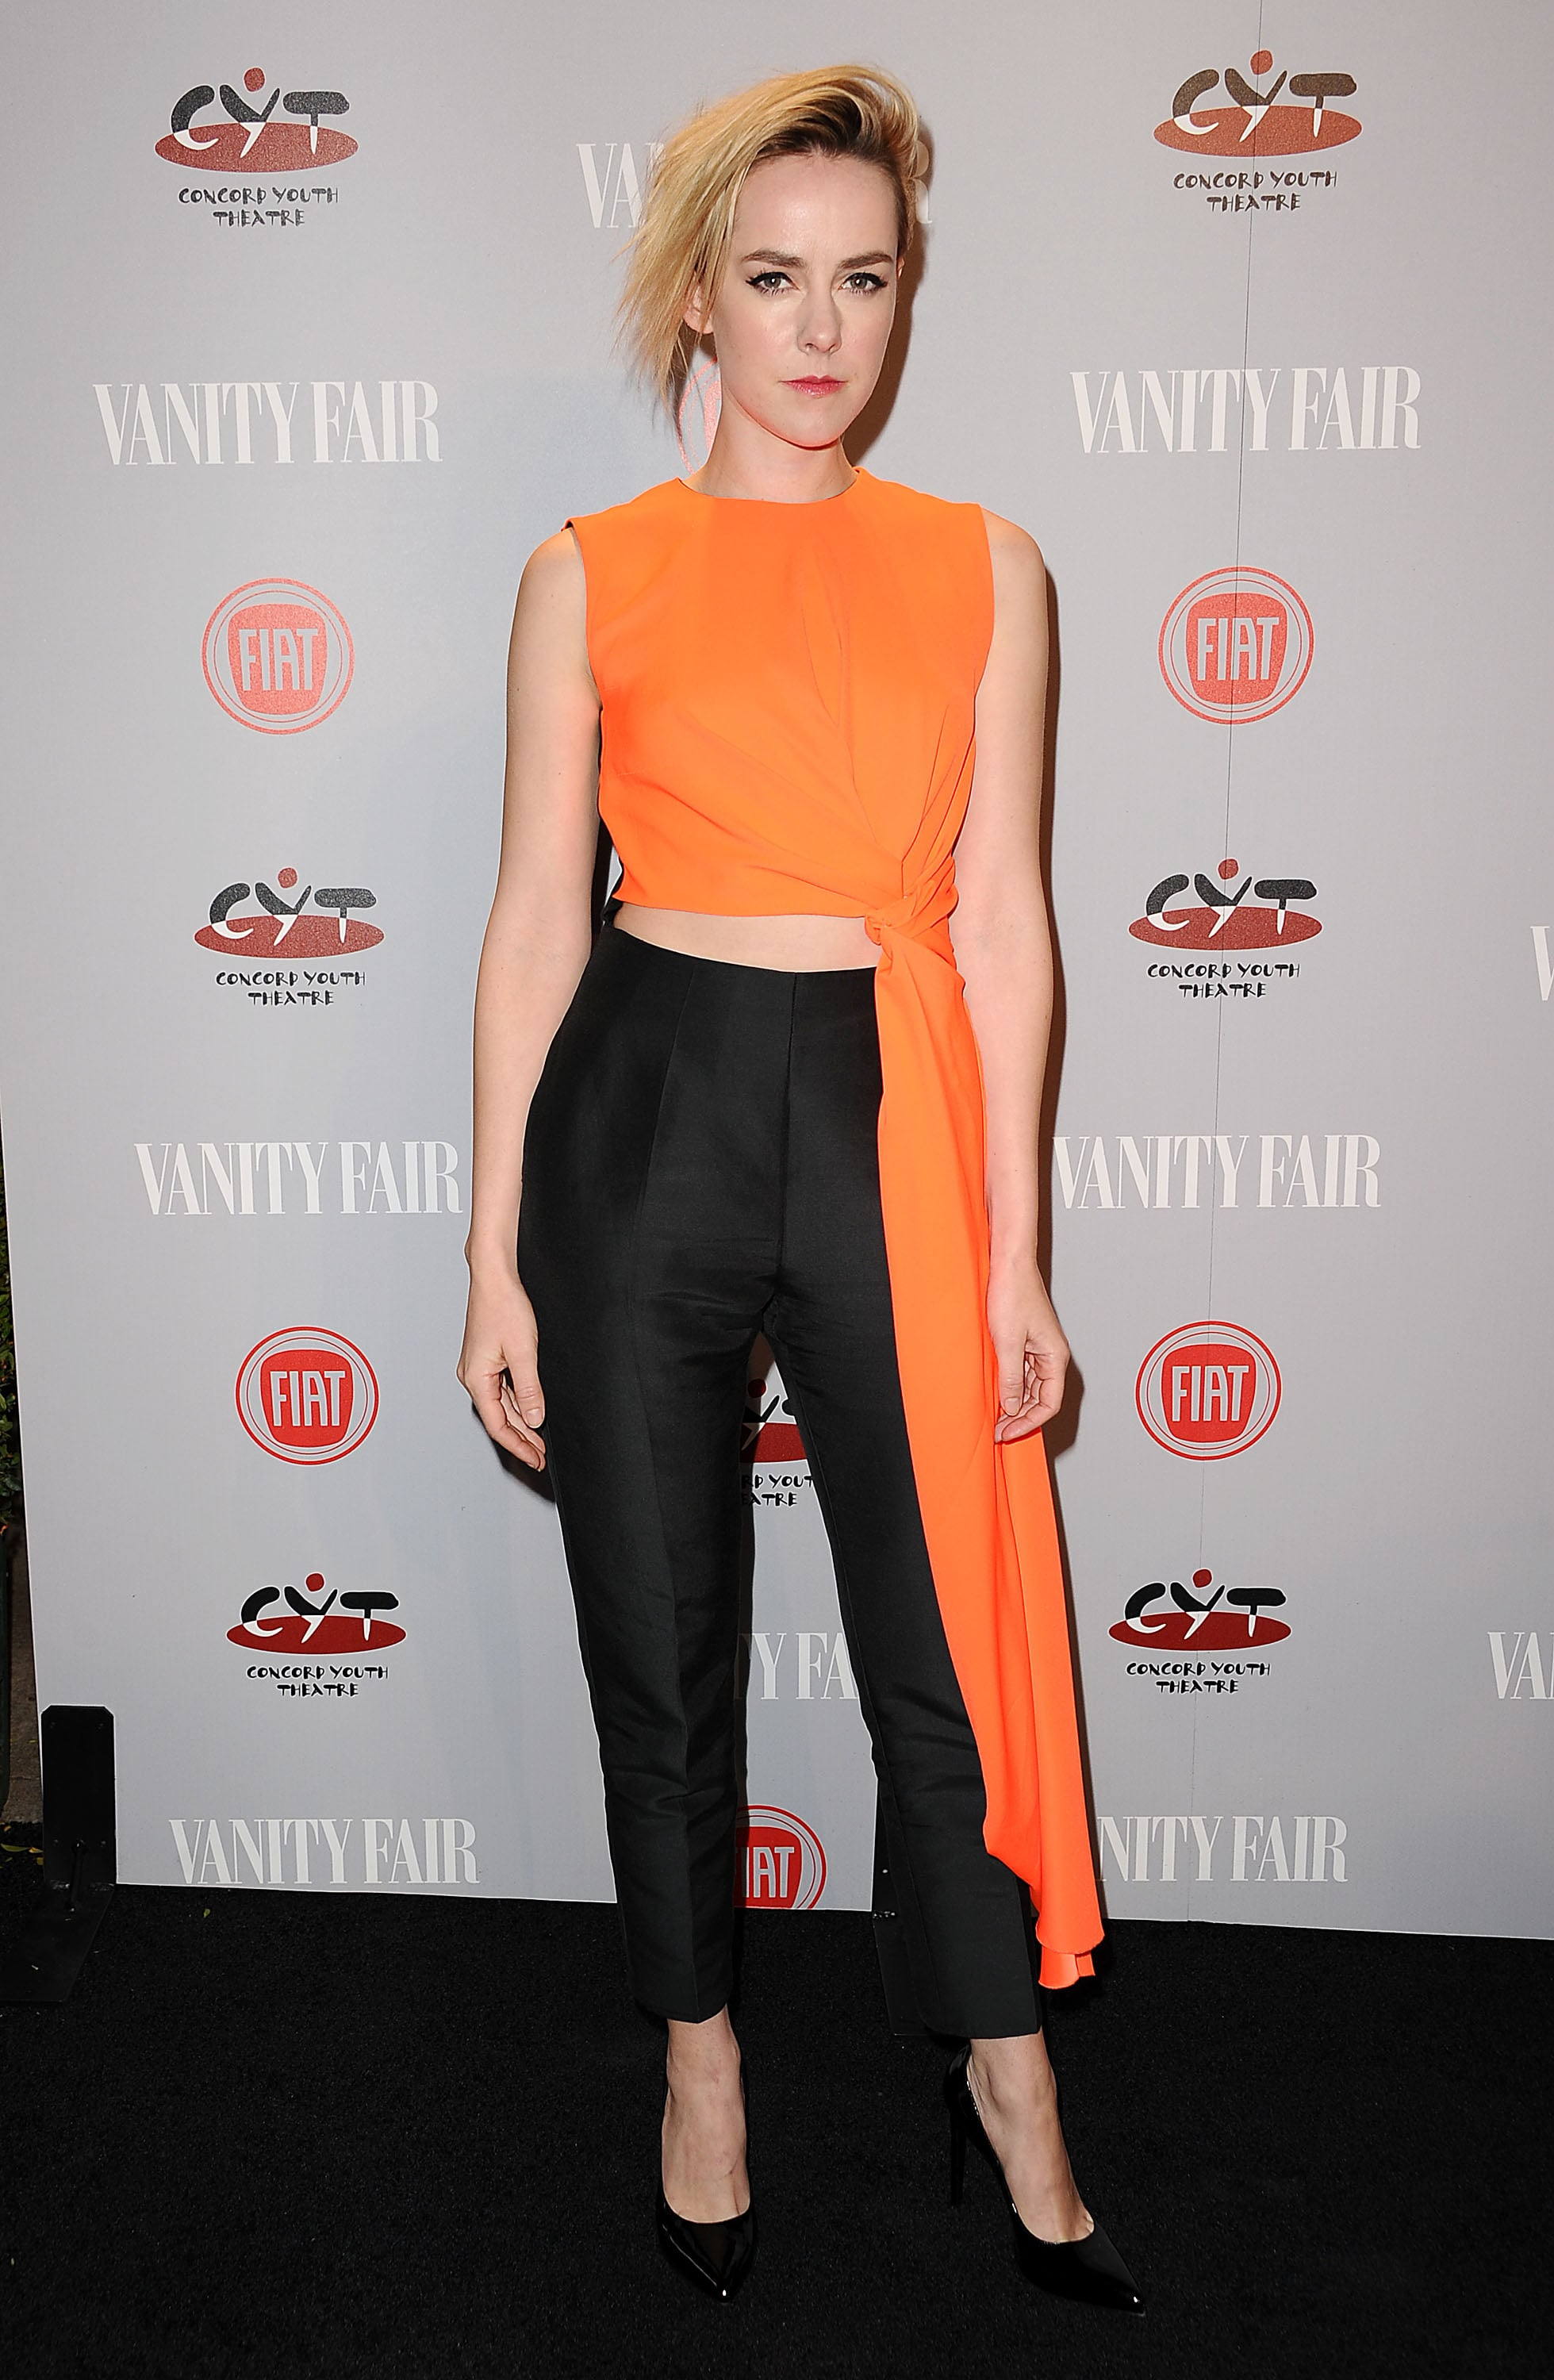 Jena Malone at the Vanity Fair Young Hollywood Party